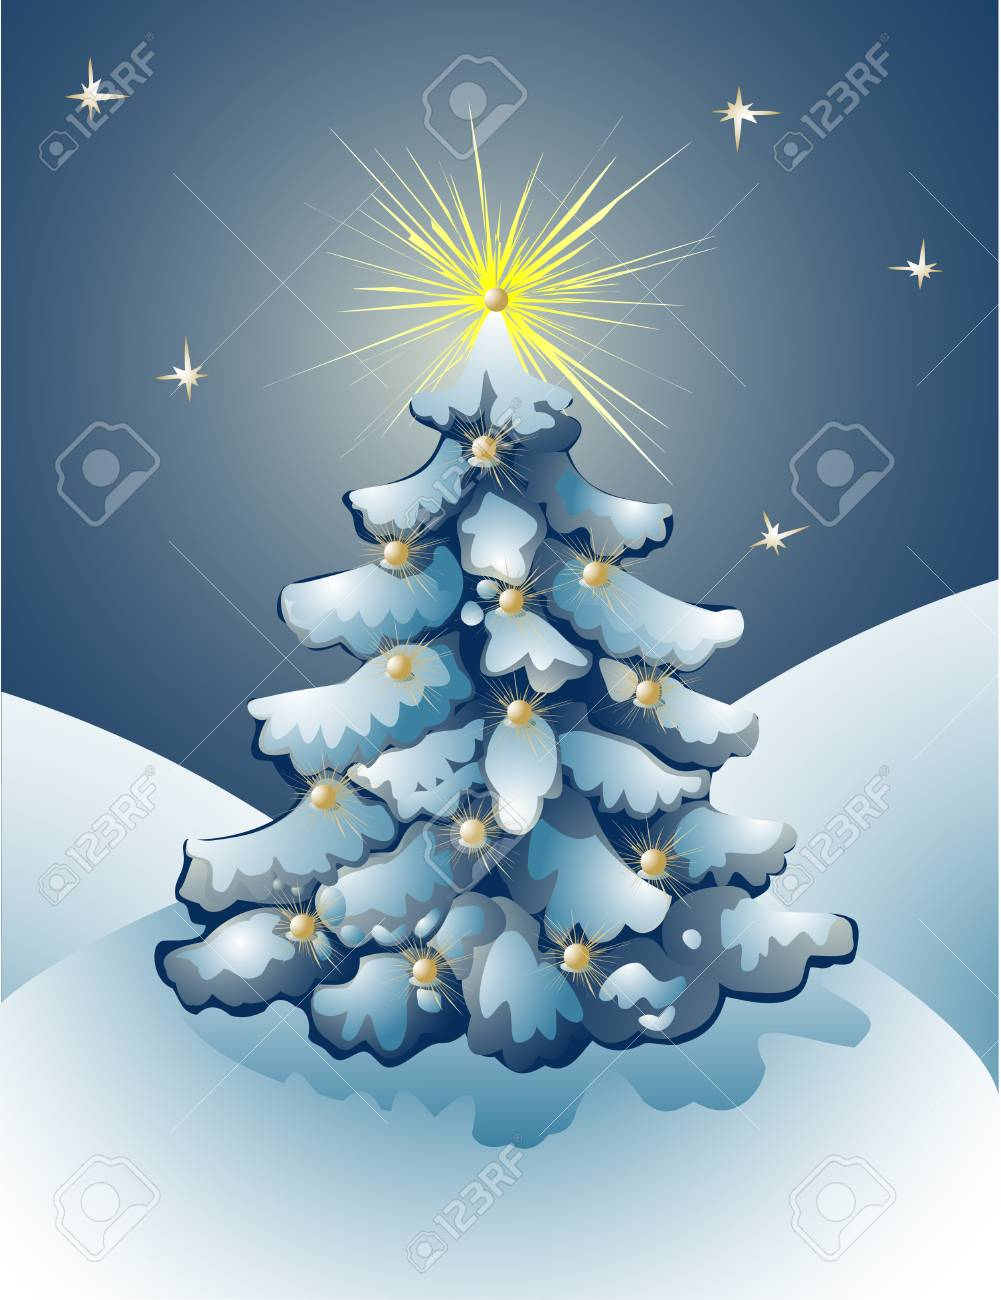 Christmas tree with sparkling balls on branches and stars in the sky. Stock Vector - 8116758